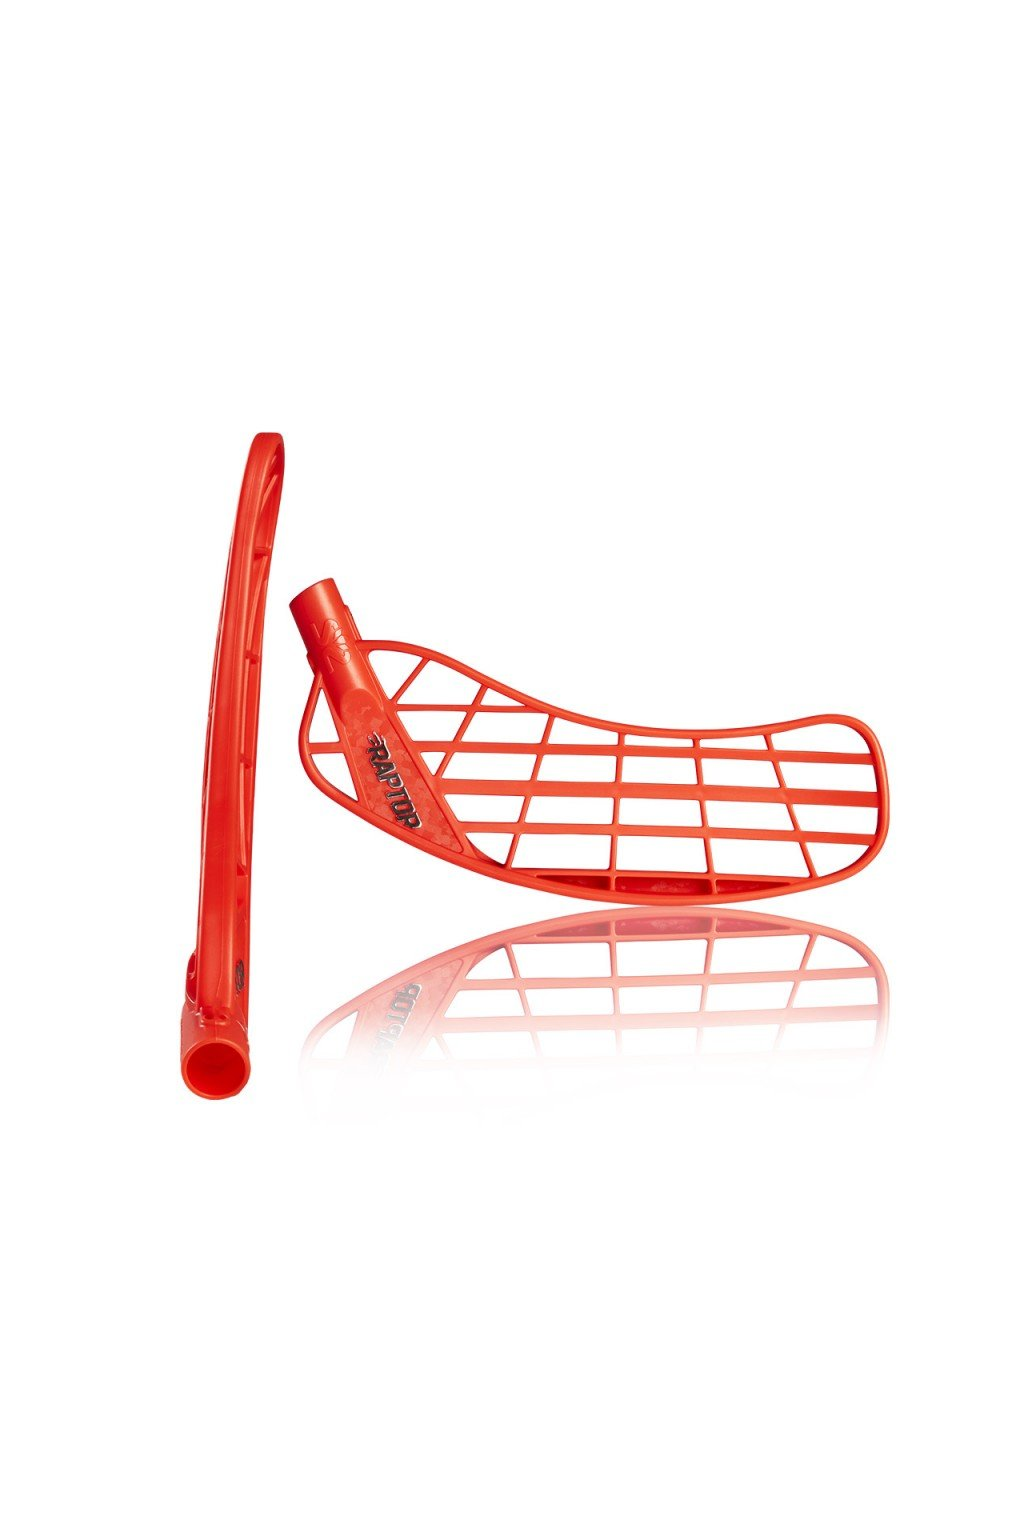 salming raptor blade touch plus red l